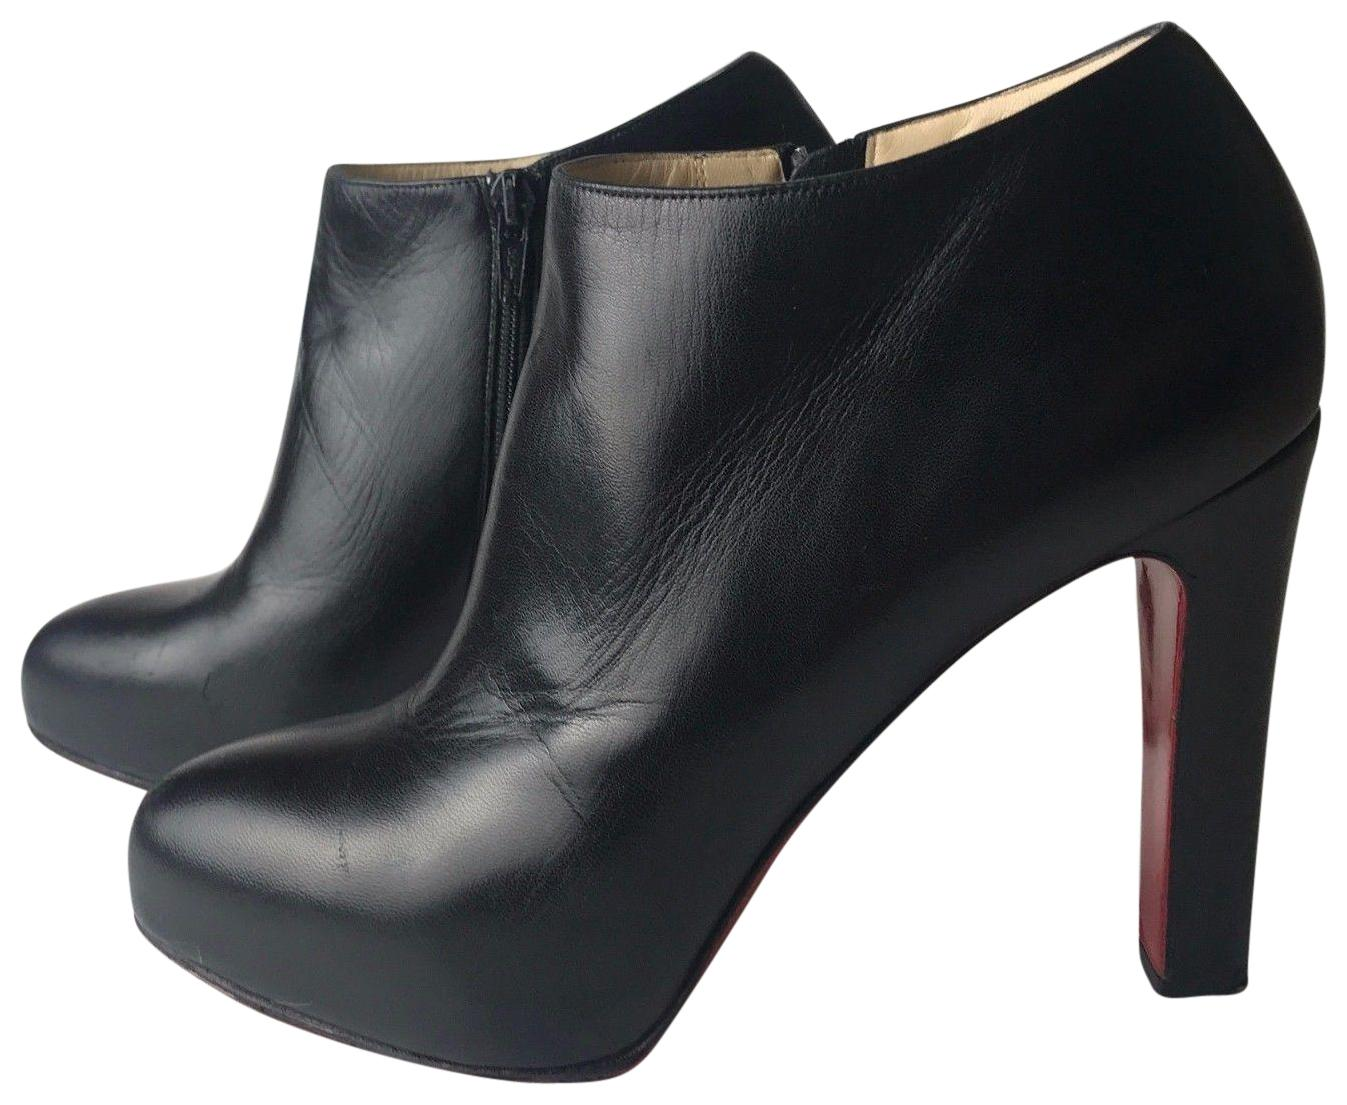 223e8d2f5817 discount code for christian louboutin vicky suede ankle boots black ...